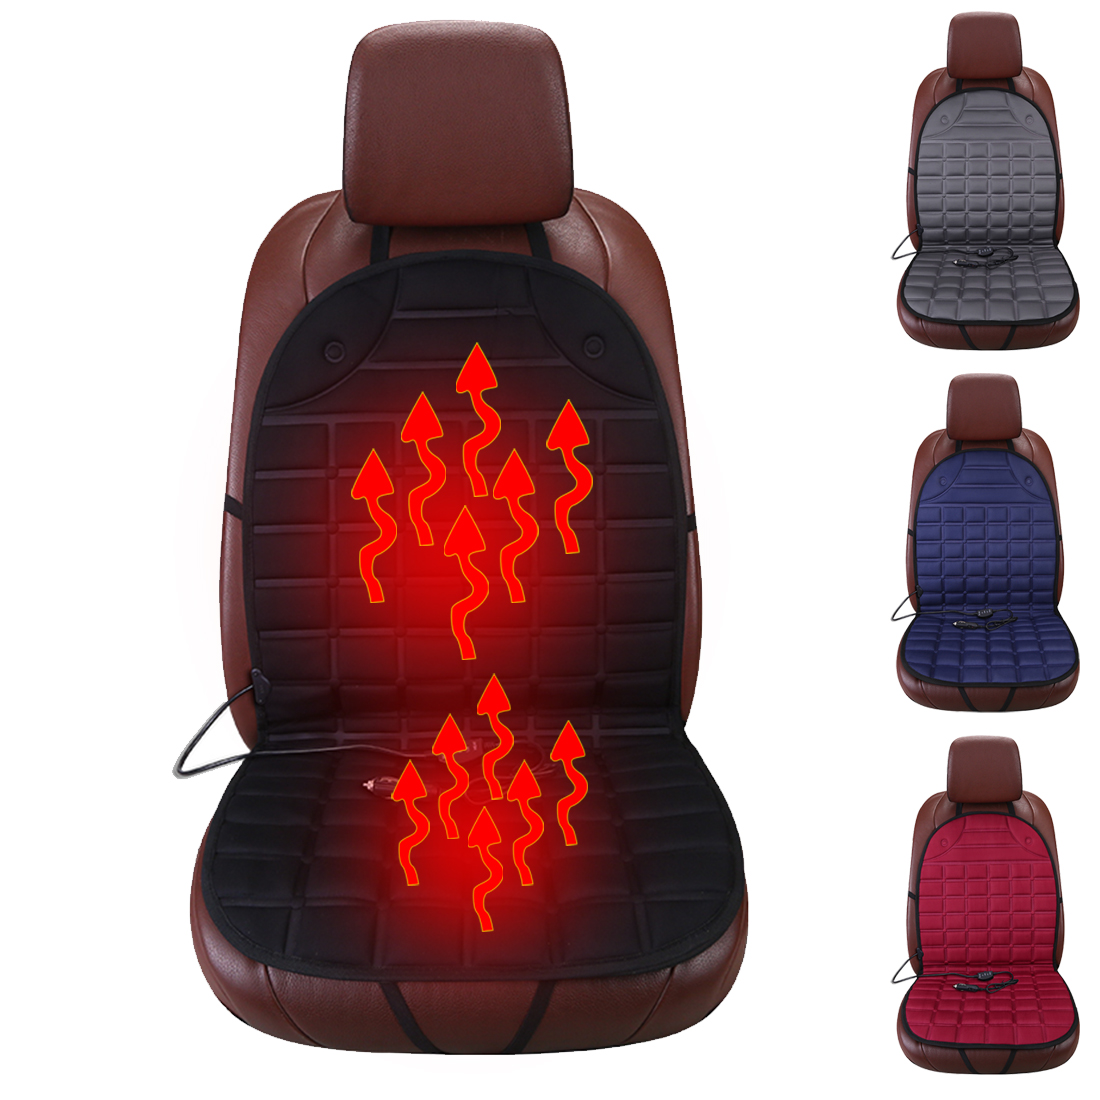 Dewtreetali 12v Electric Heated Car Seat Cushions for Winter Heating Car Seat Cushion Keep Warm Car Seat Cover Comfortable ...